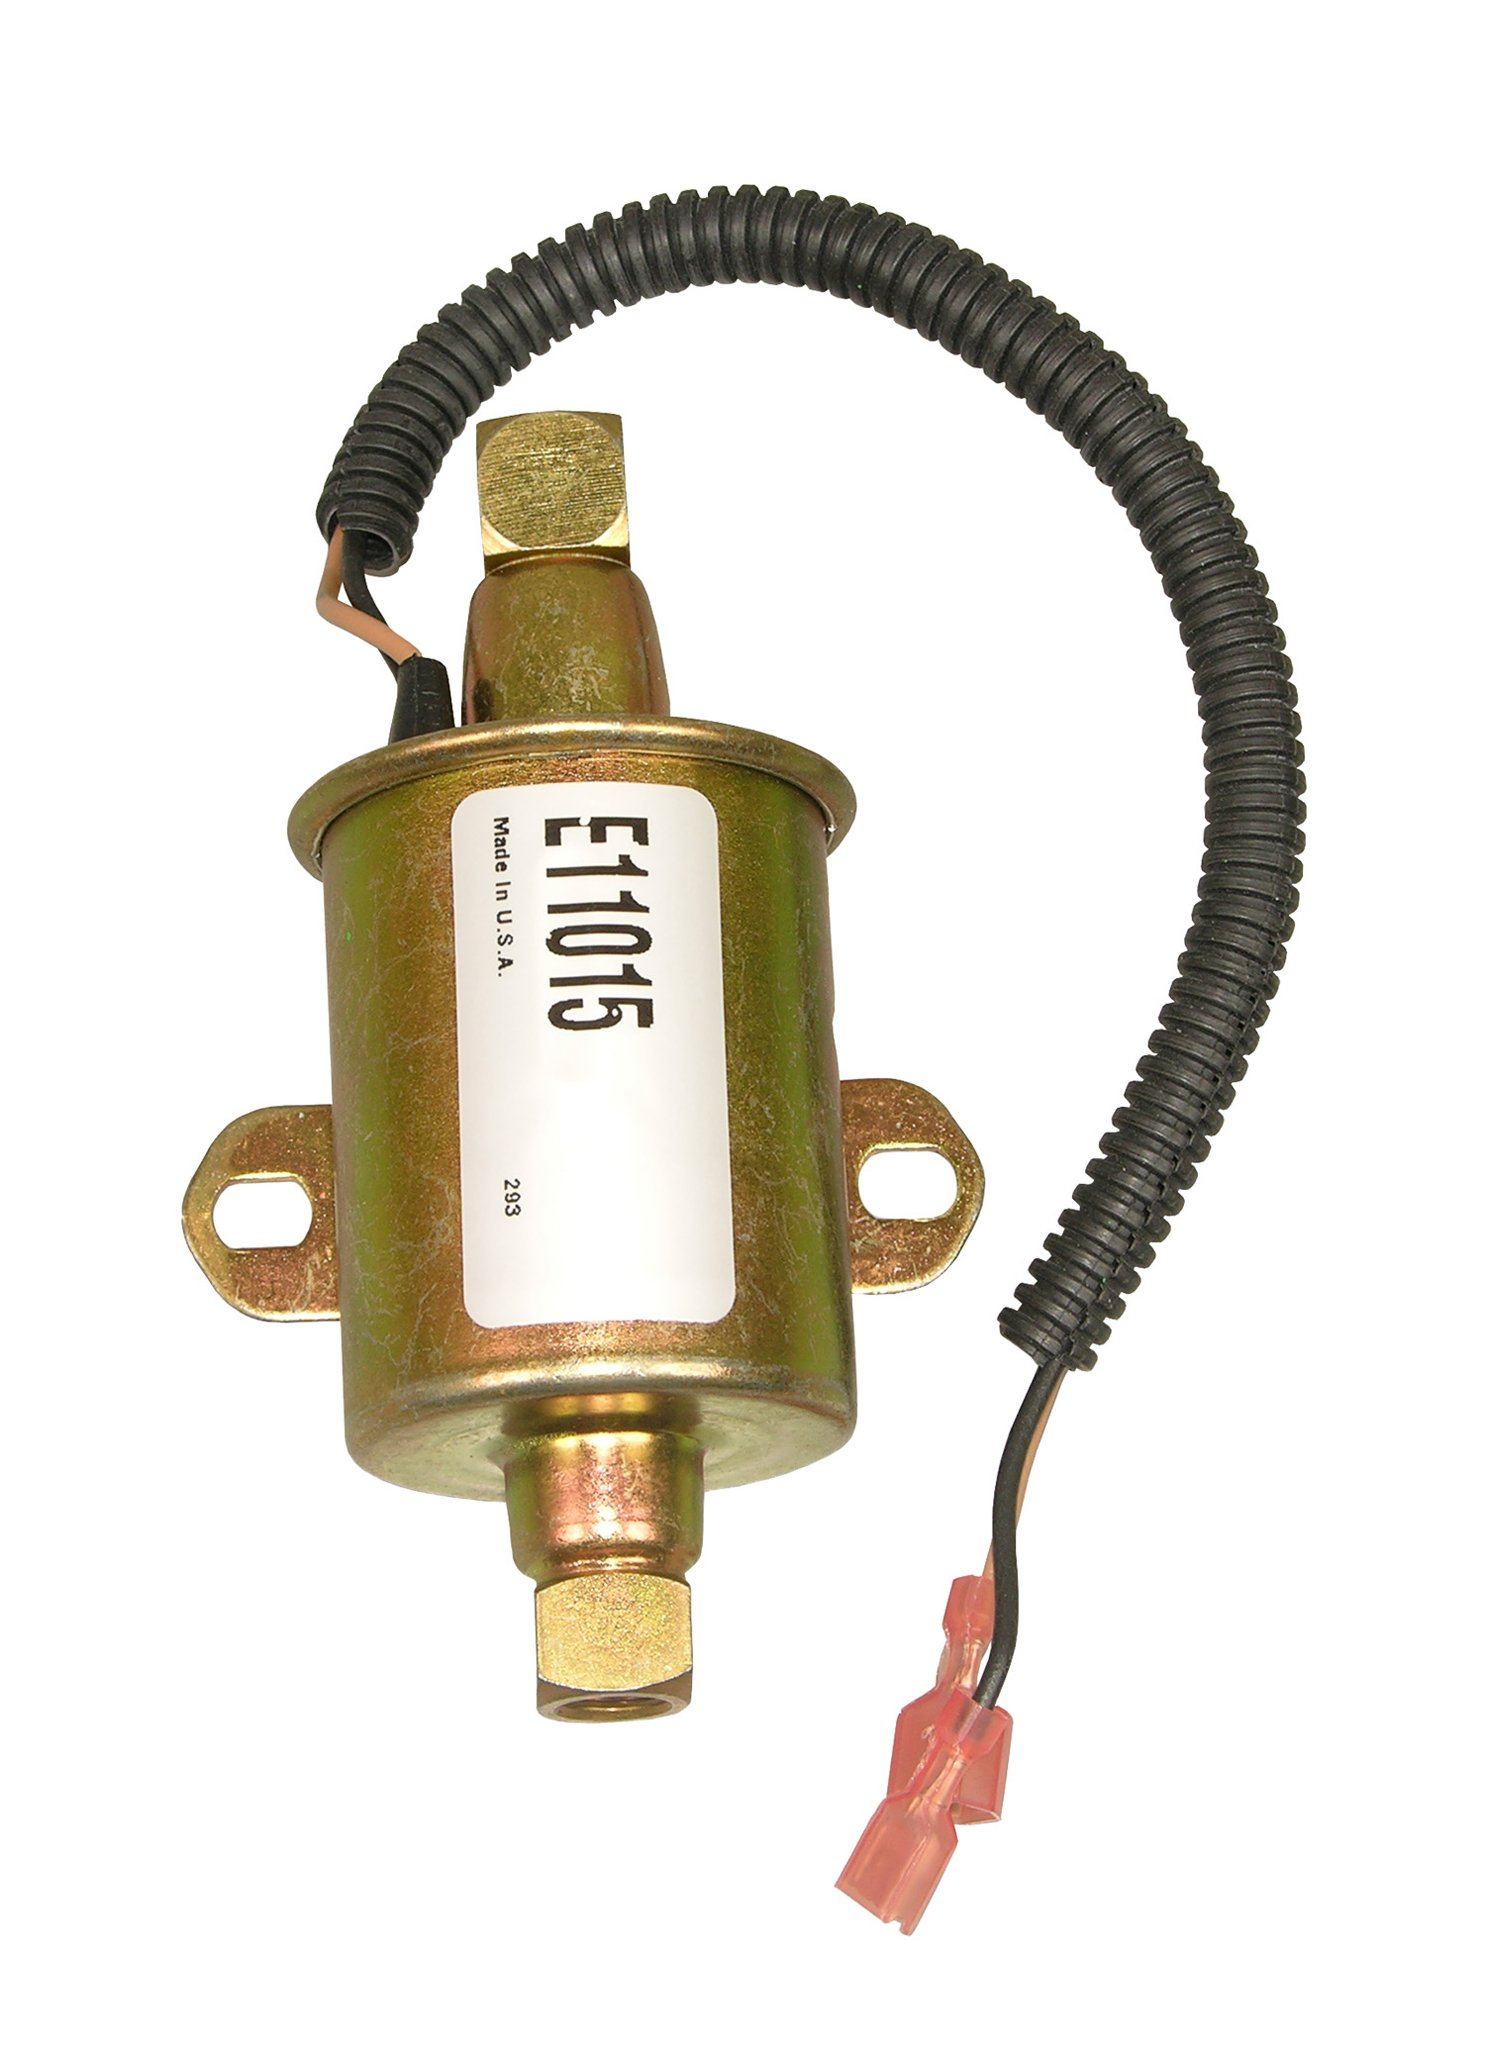 Airtex E11015 Electric Fuel Pump for Onan Generator Set by Airtex